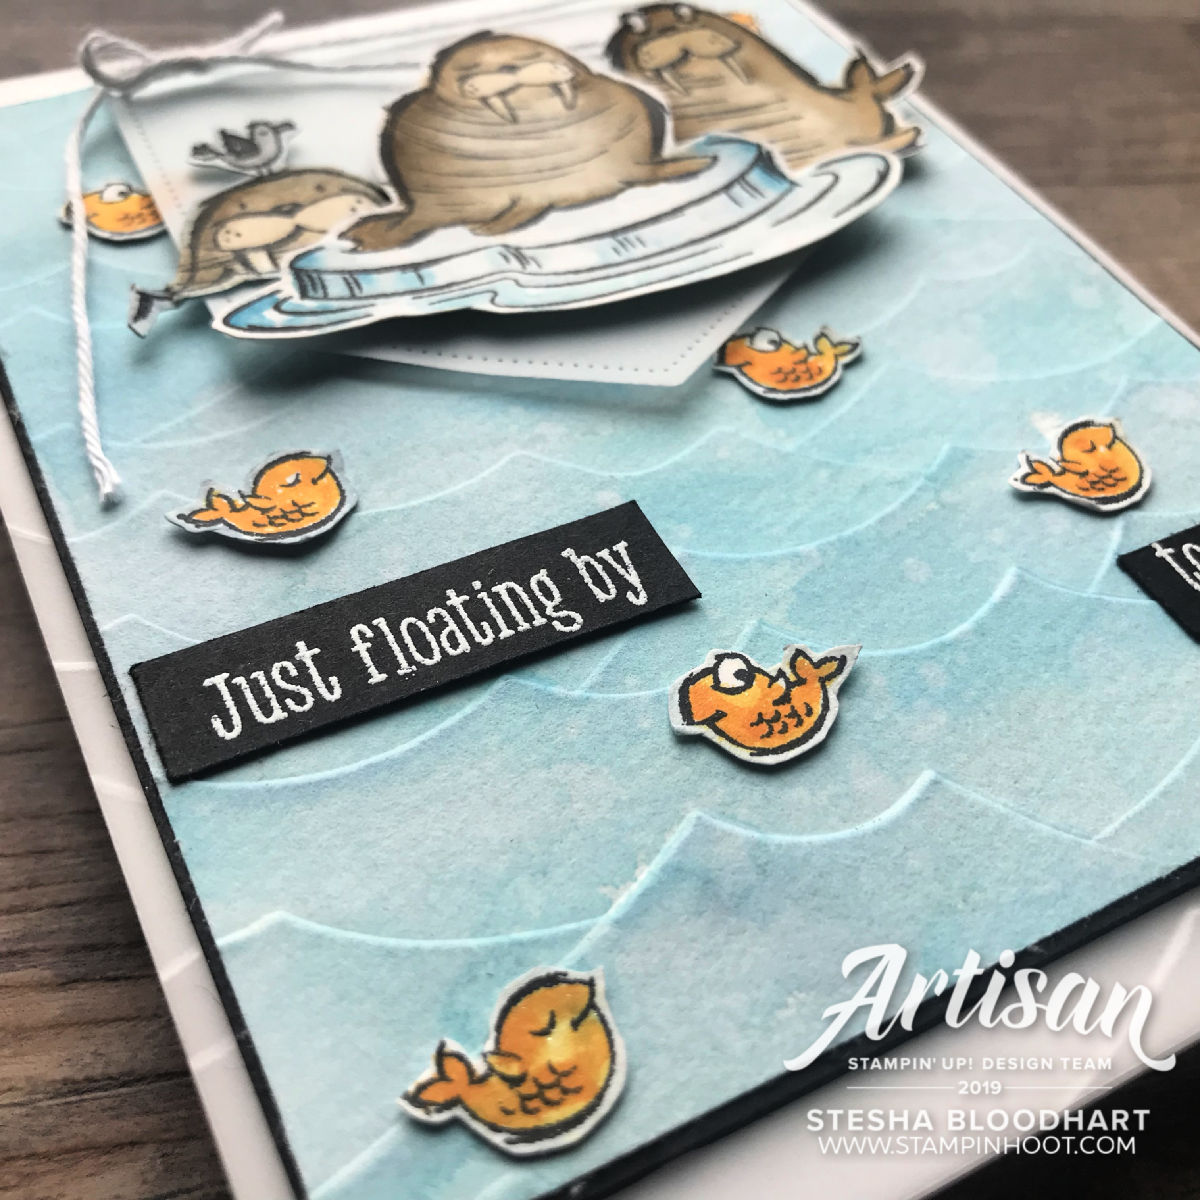 We'll Walrus be Friends Stamp Set by Stampin' Up! Card by 2019 Artisan Stesha Bloodhart Stampin' Hoot!